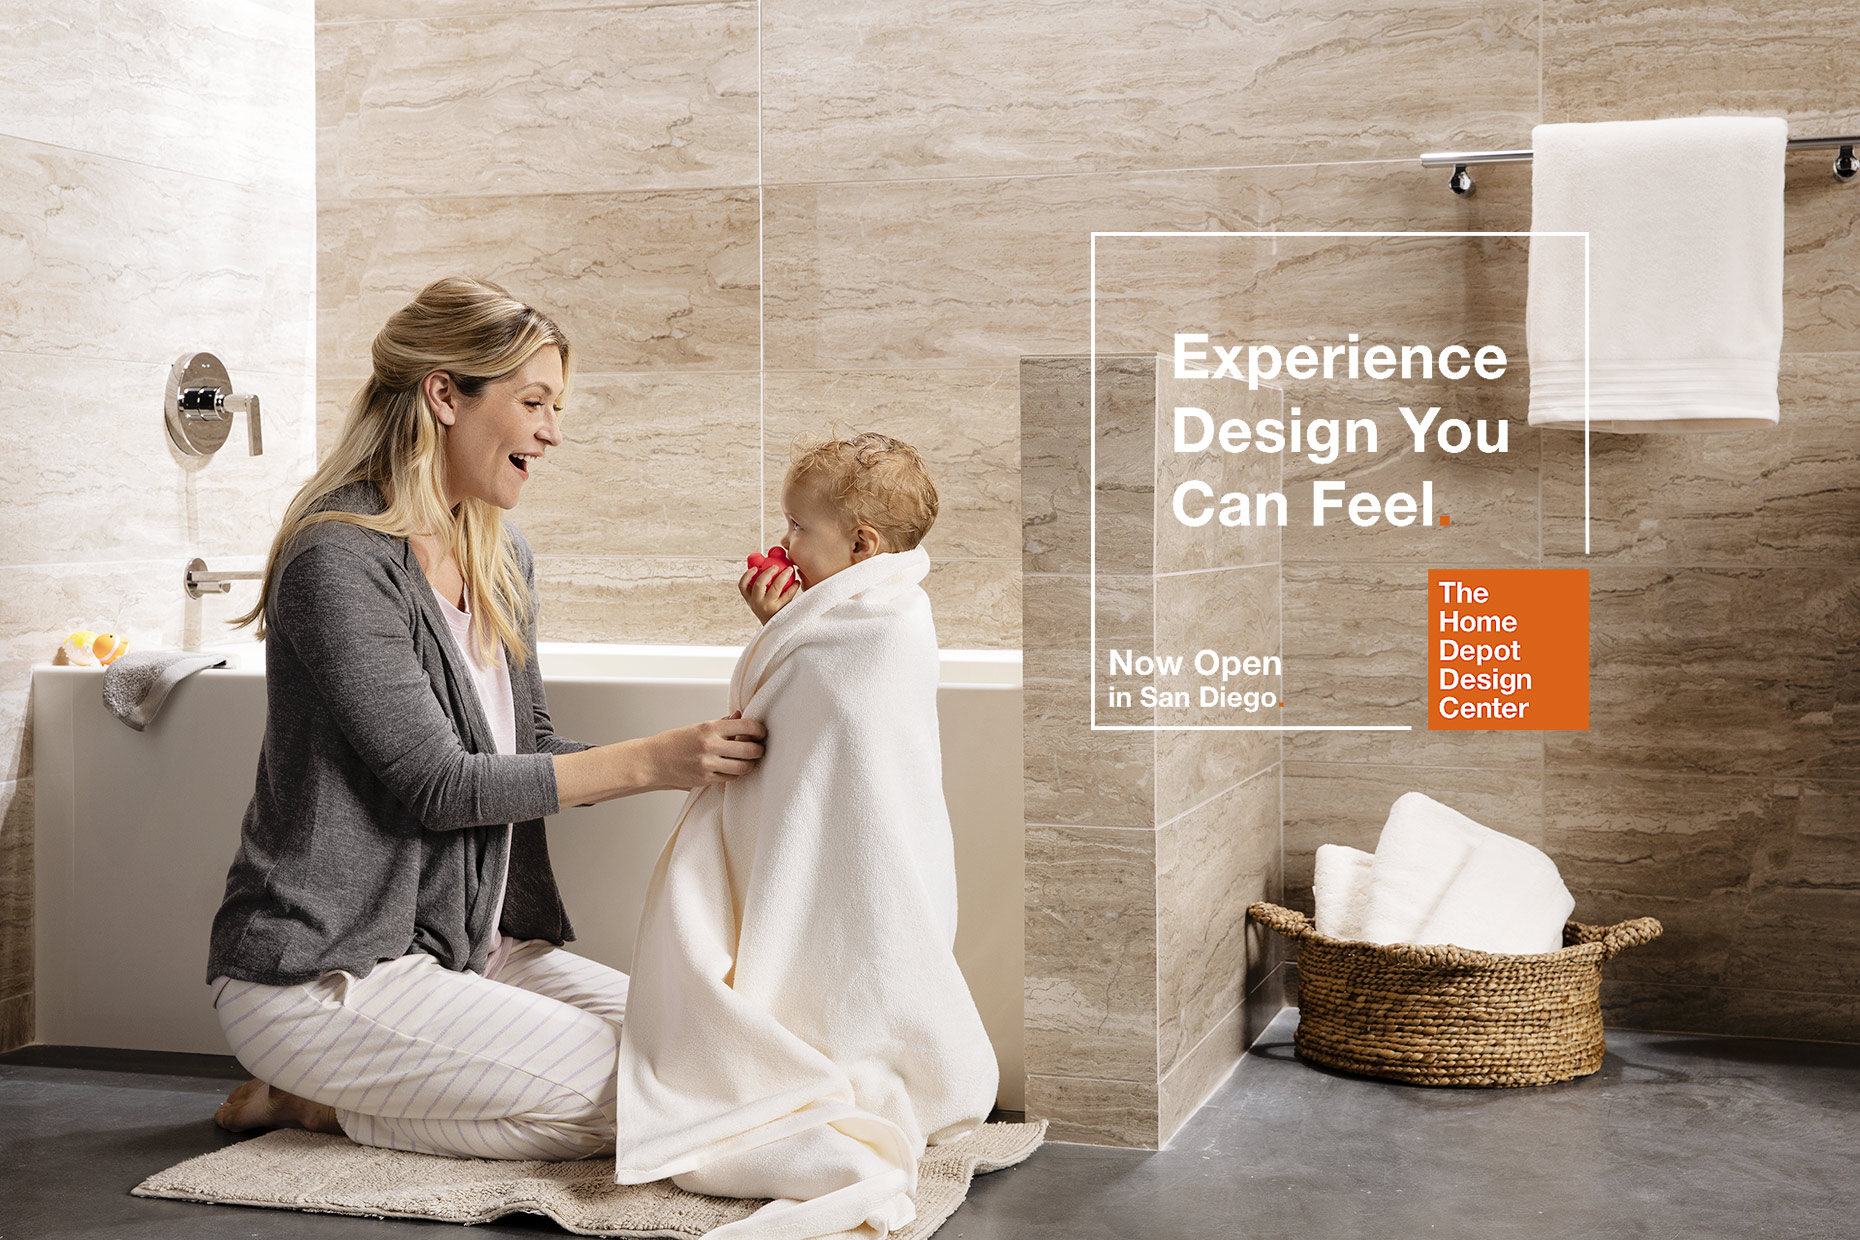 Kimberly_Genevieve_Home_Depot_Design_Center_Web_20